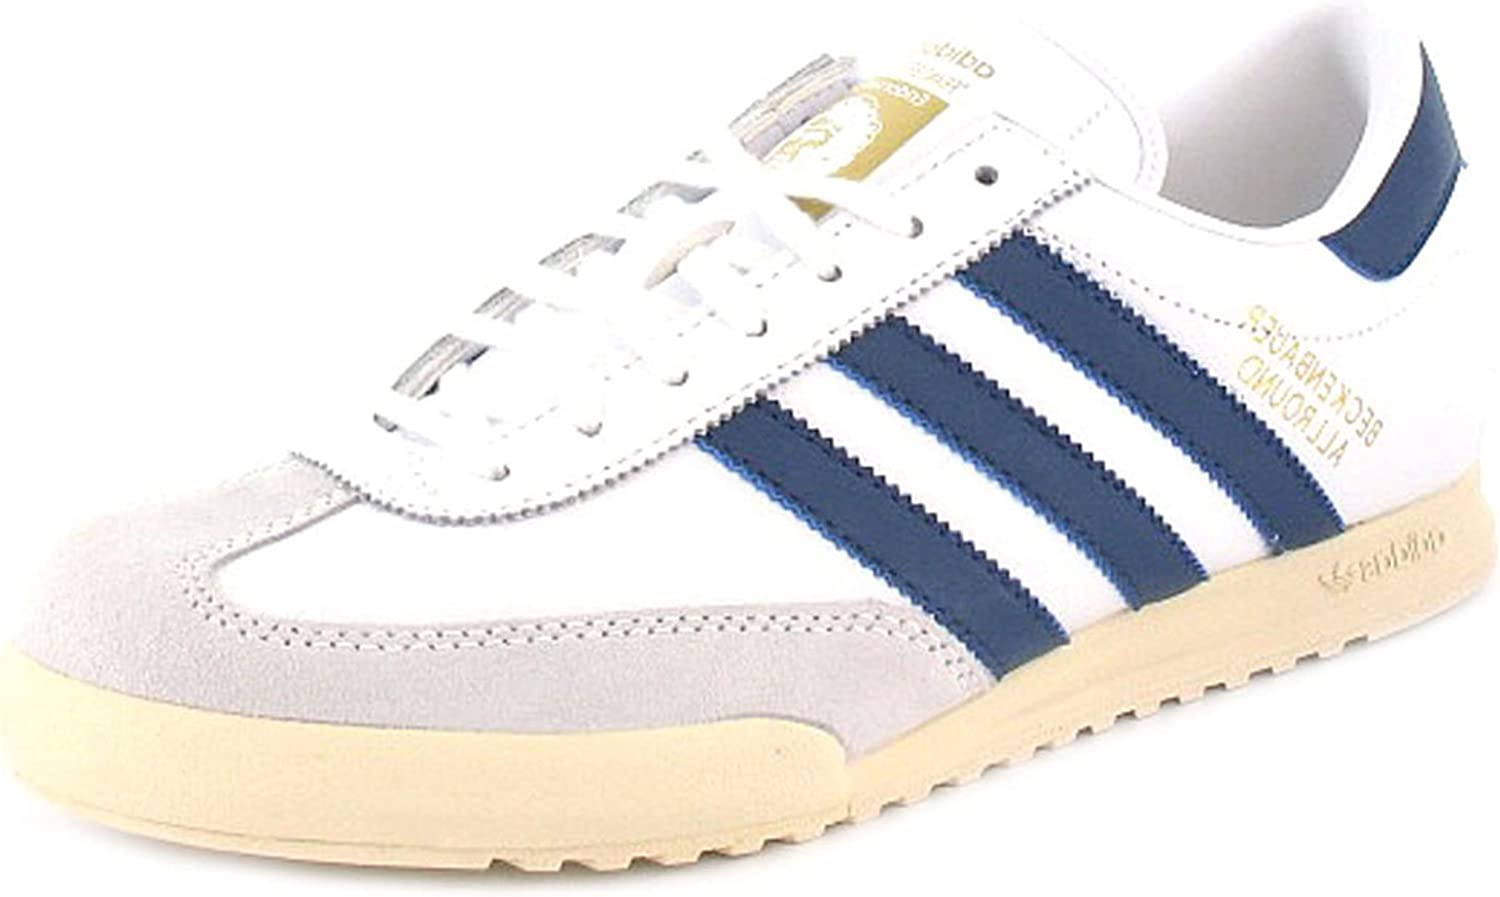 Mens/Gents White Leather \u0026 Suede Adidas